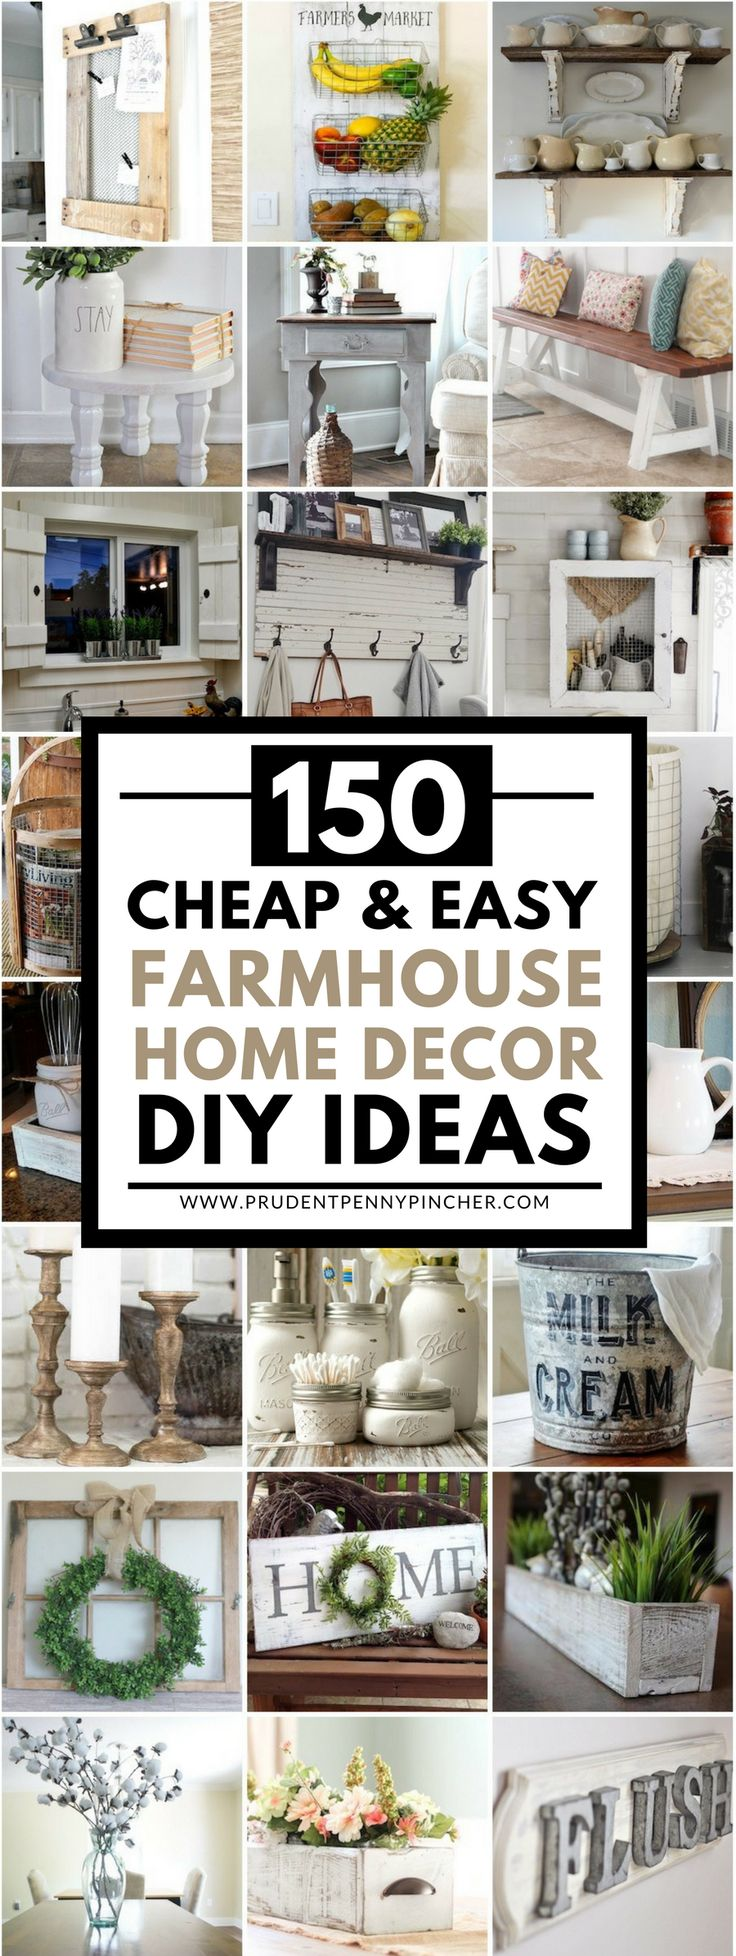 Diy Home Design Ideas diy low budget home decor 150 Cheap And Easy Diy Farmhouse Style Home Decor Ideas